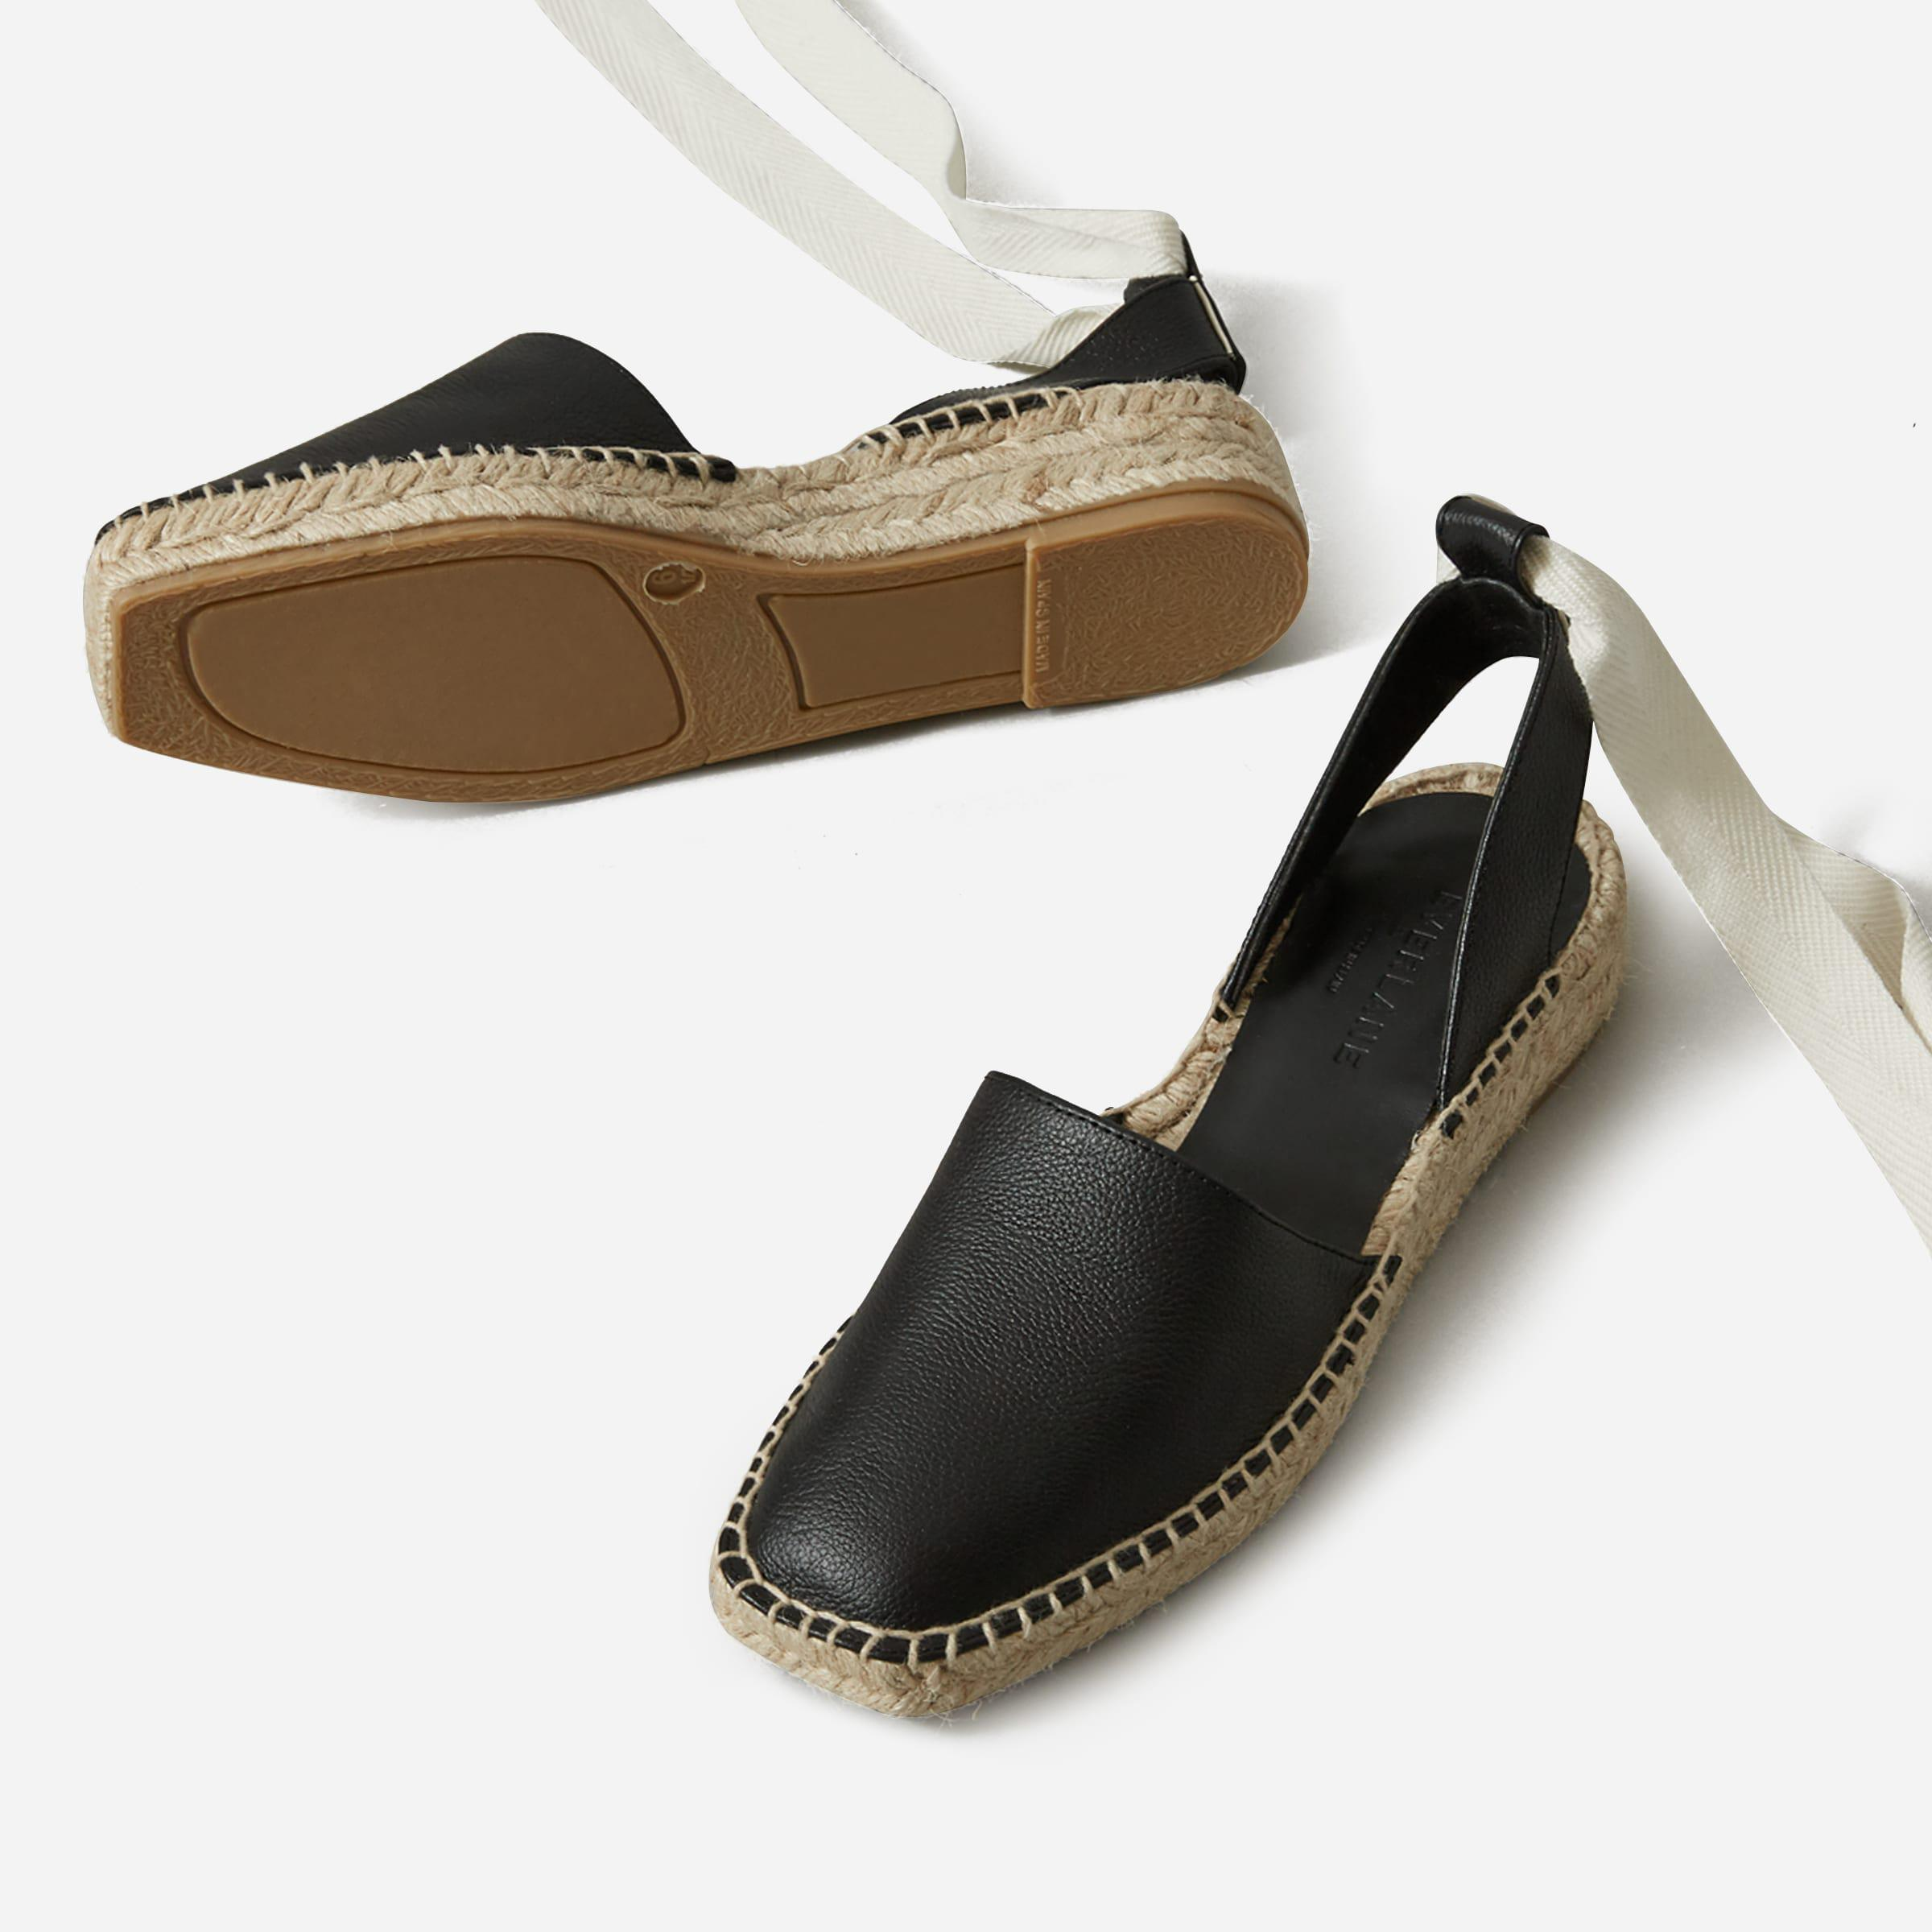 The D'orsay Espadrille 2